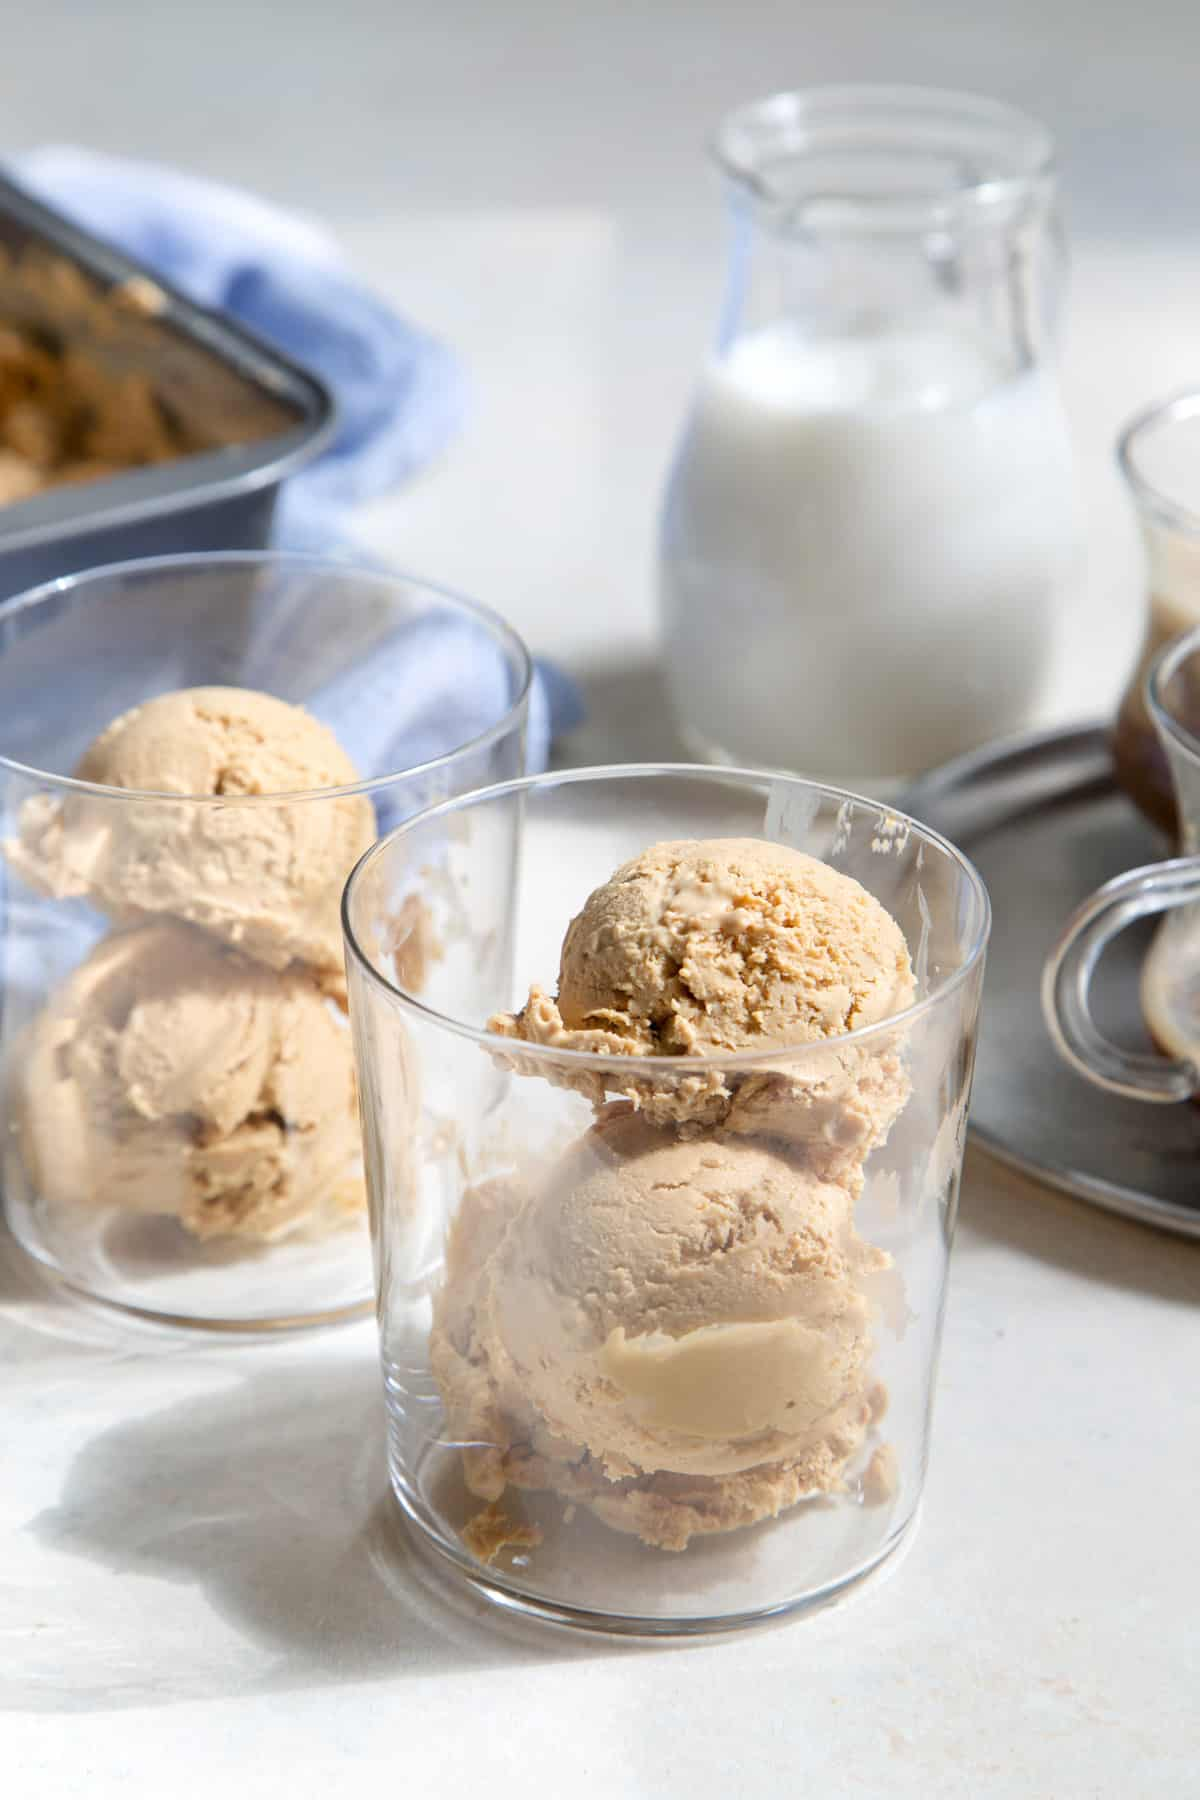 No Churn Espresso Dulce de Leche Ice Cream